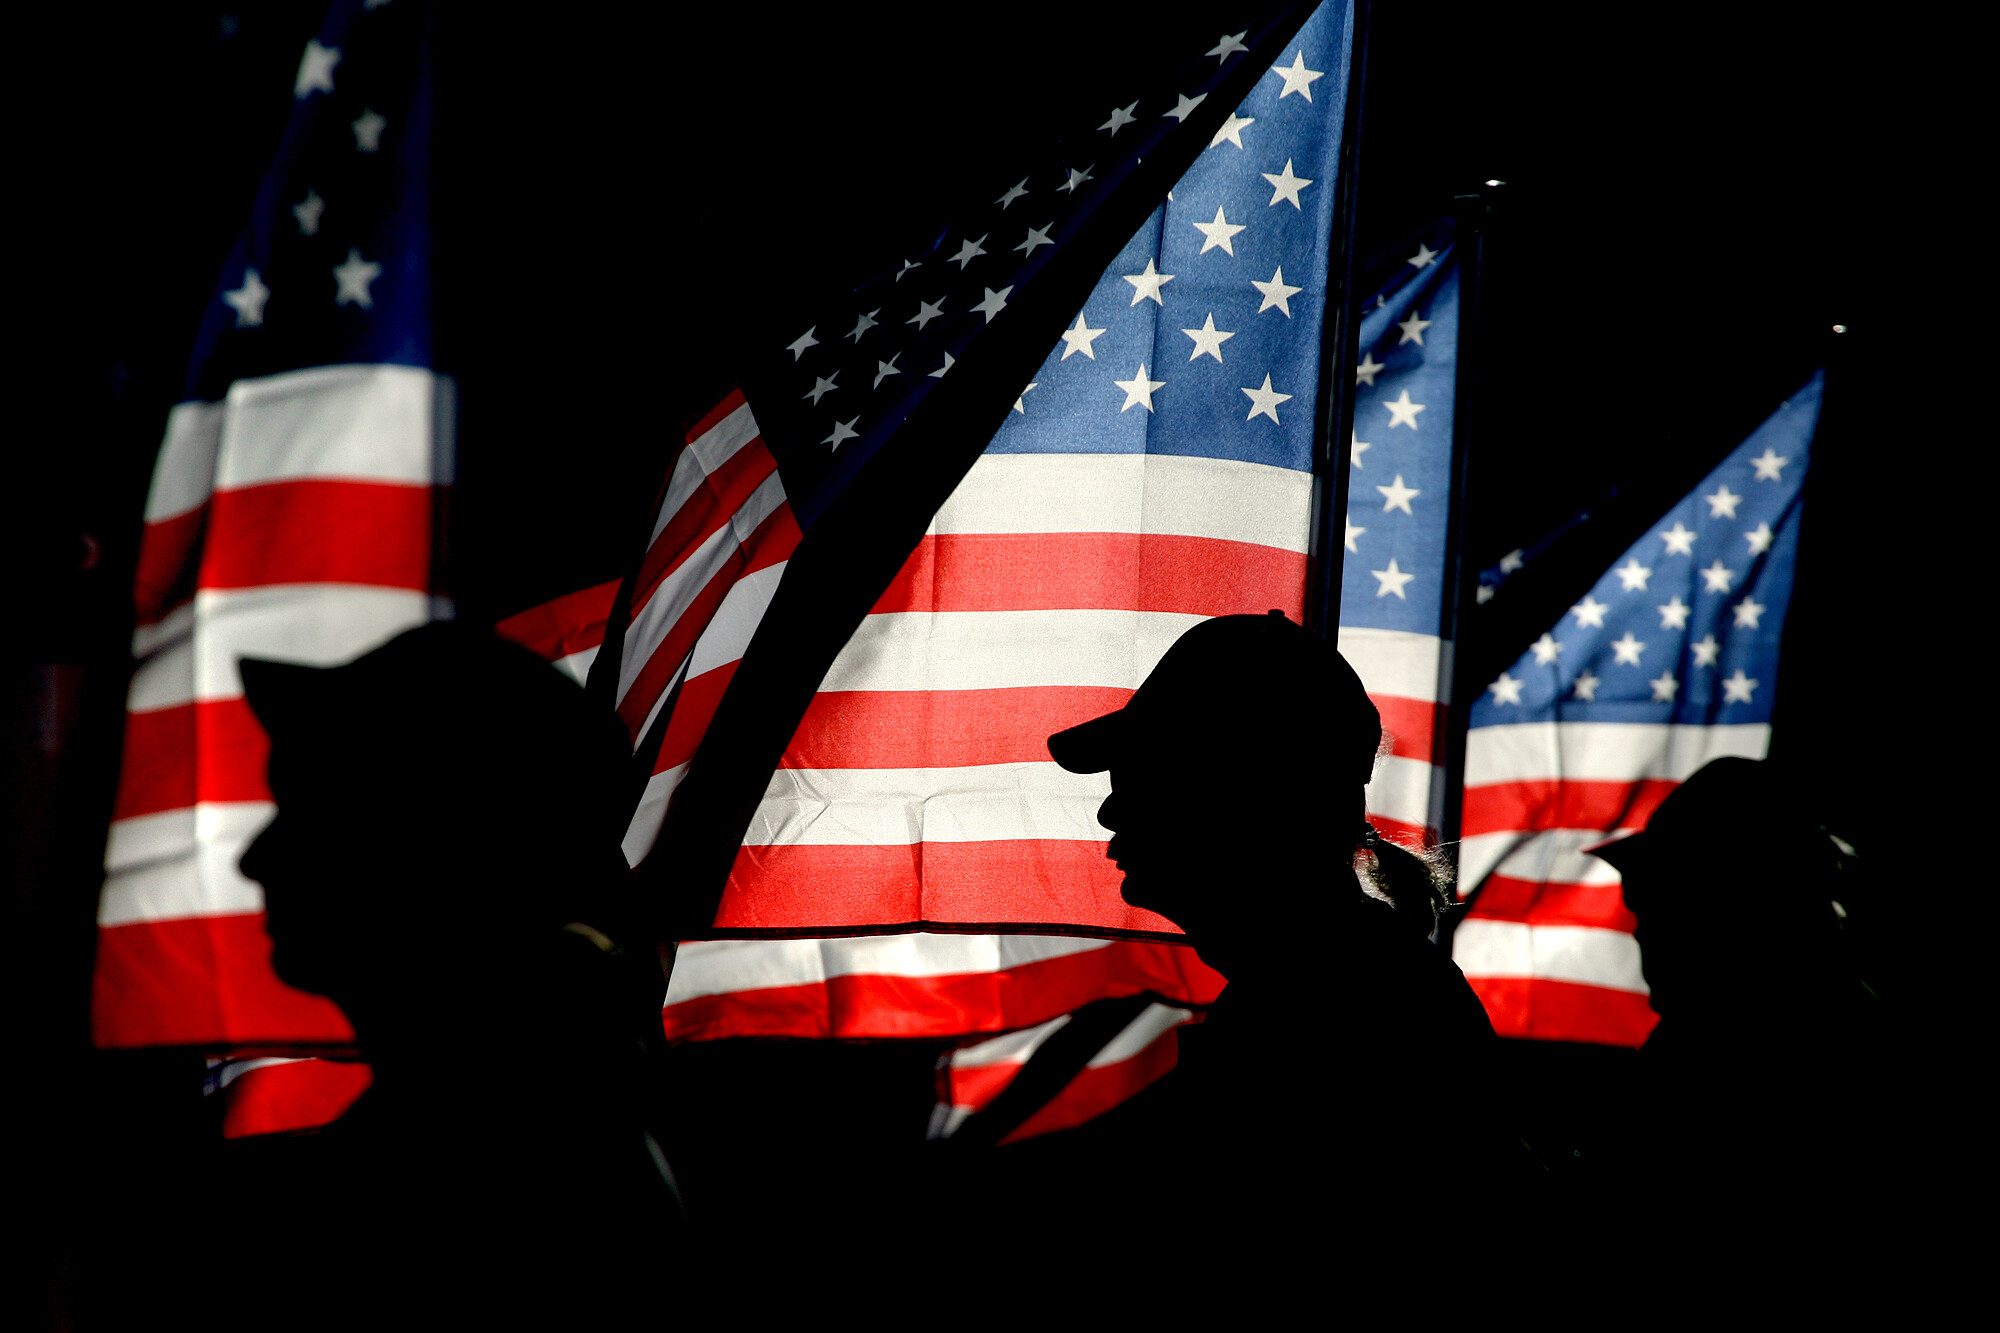 How to help, volunteer and honor 9/11 victims through public service